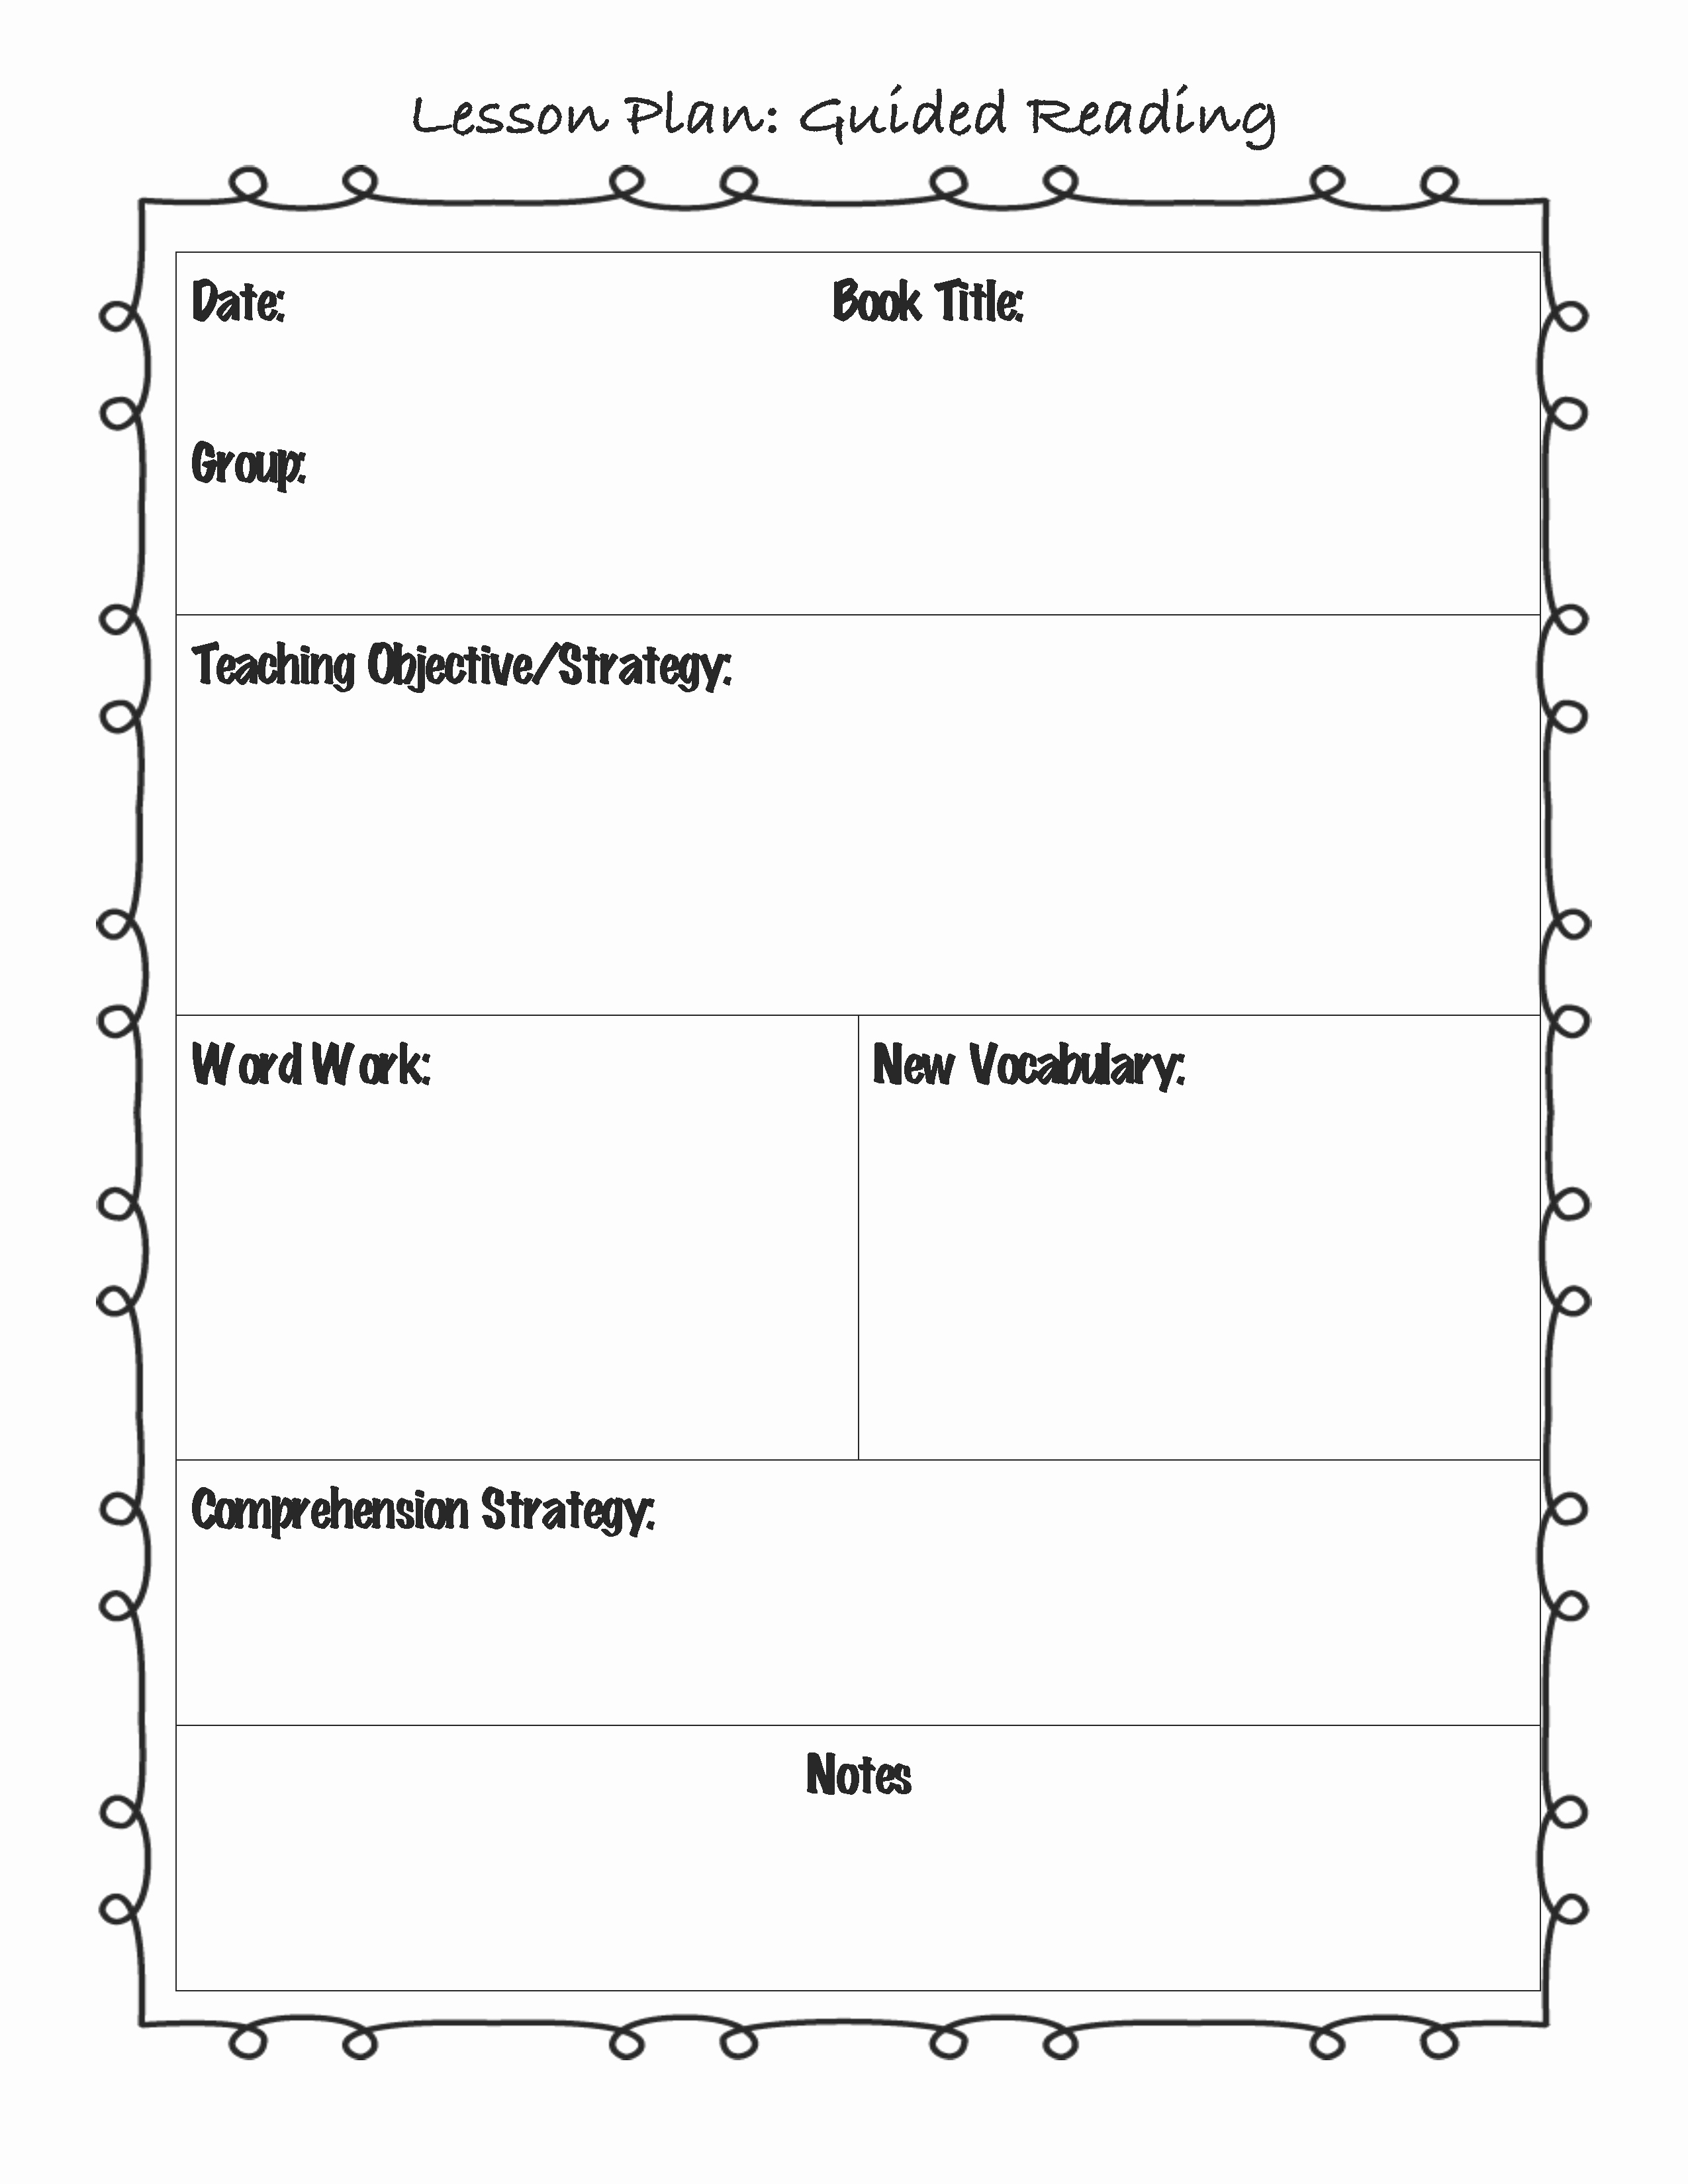 Readers Workshop Lesson Plan Template Best Of Guided Reading Lesson Plan Template